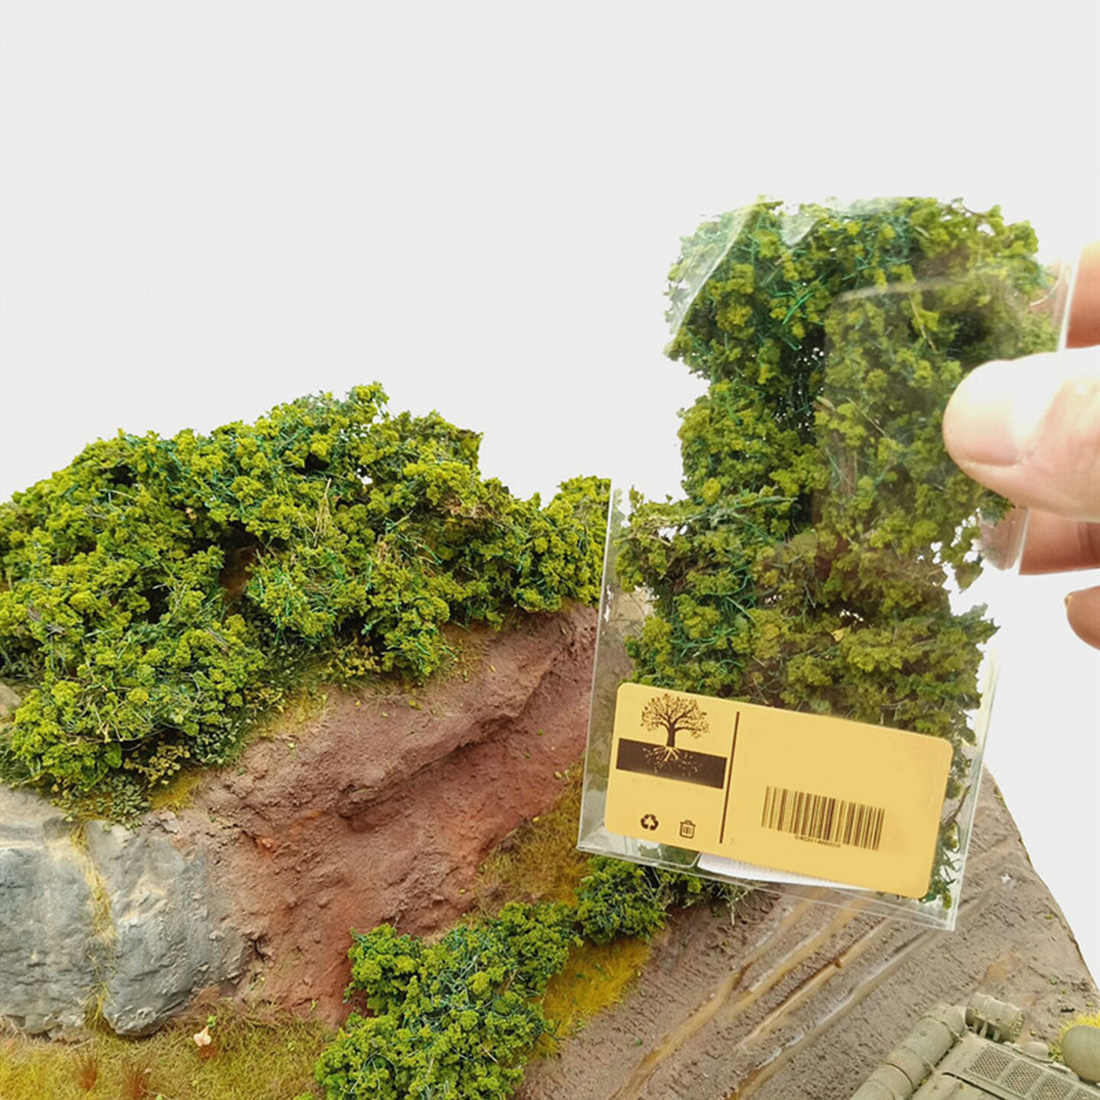 DIY Simulation Tree Bush Combat Vehicles Camouflage Cover Sand Table Miniature Vegetation Model - Light Green